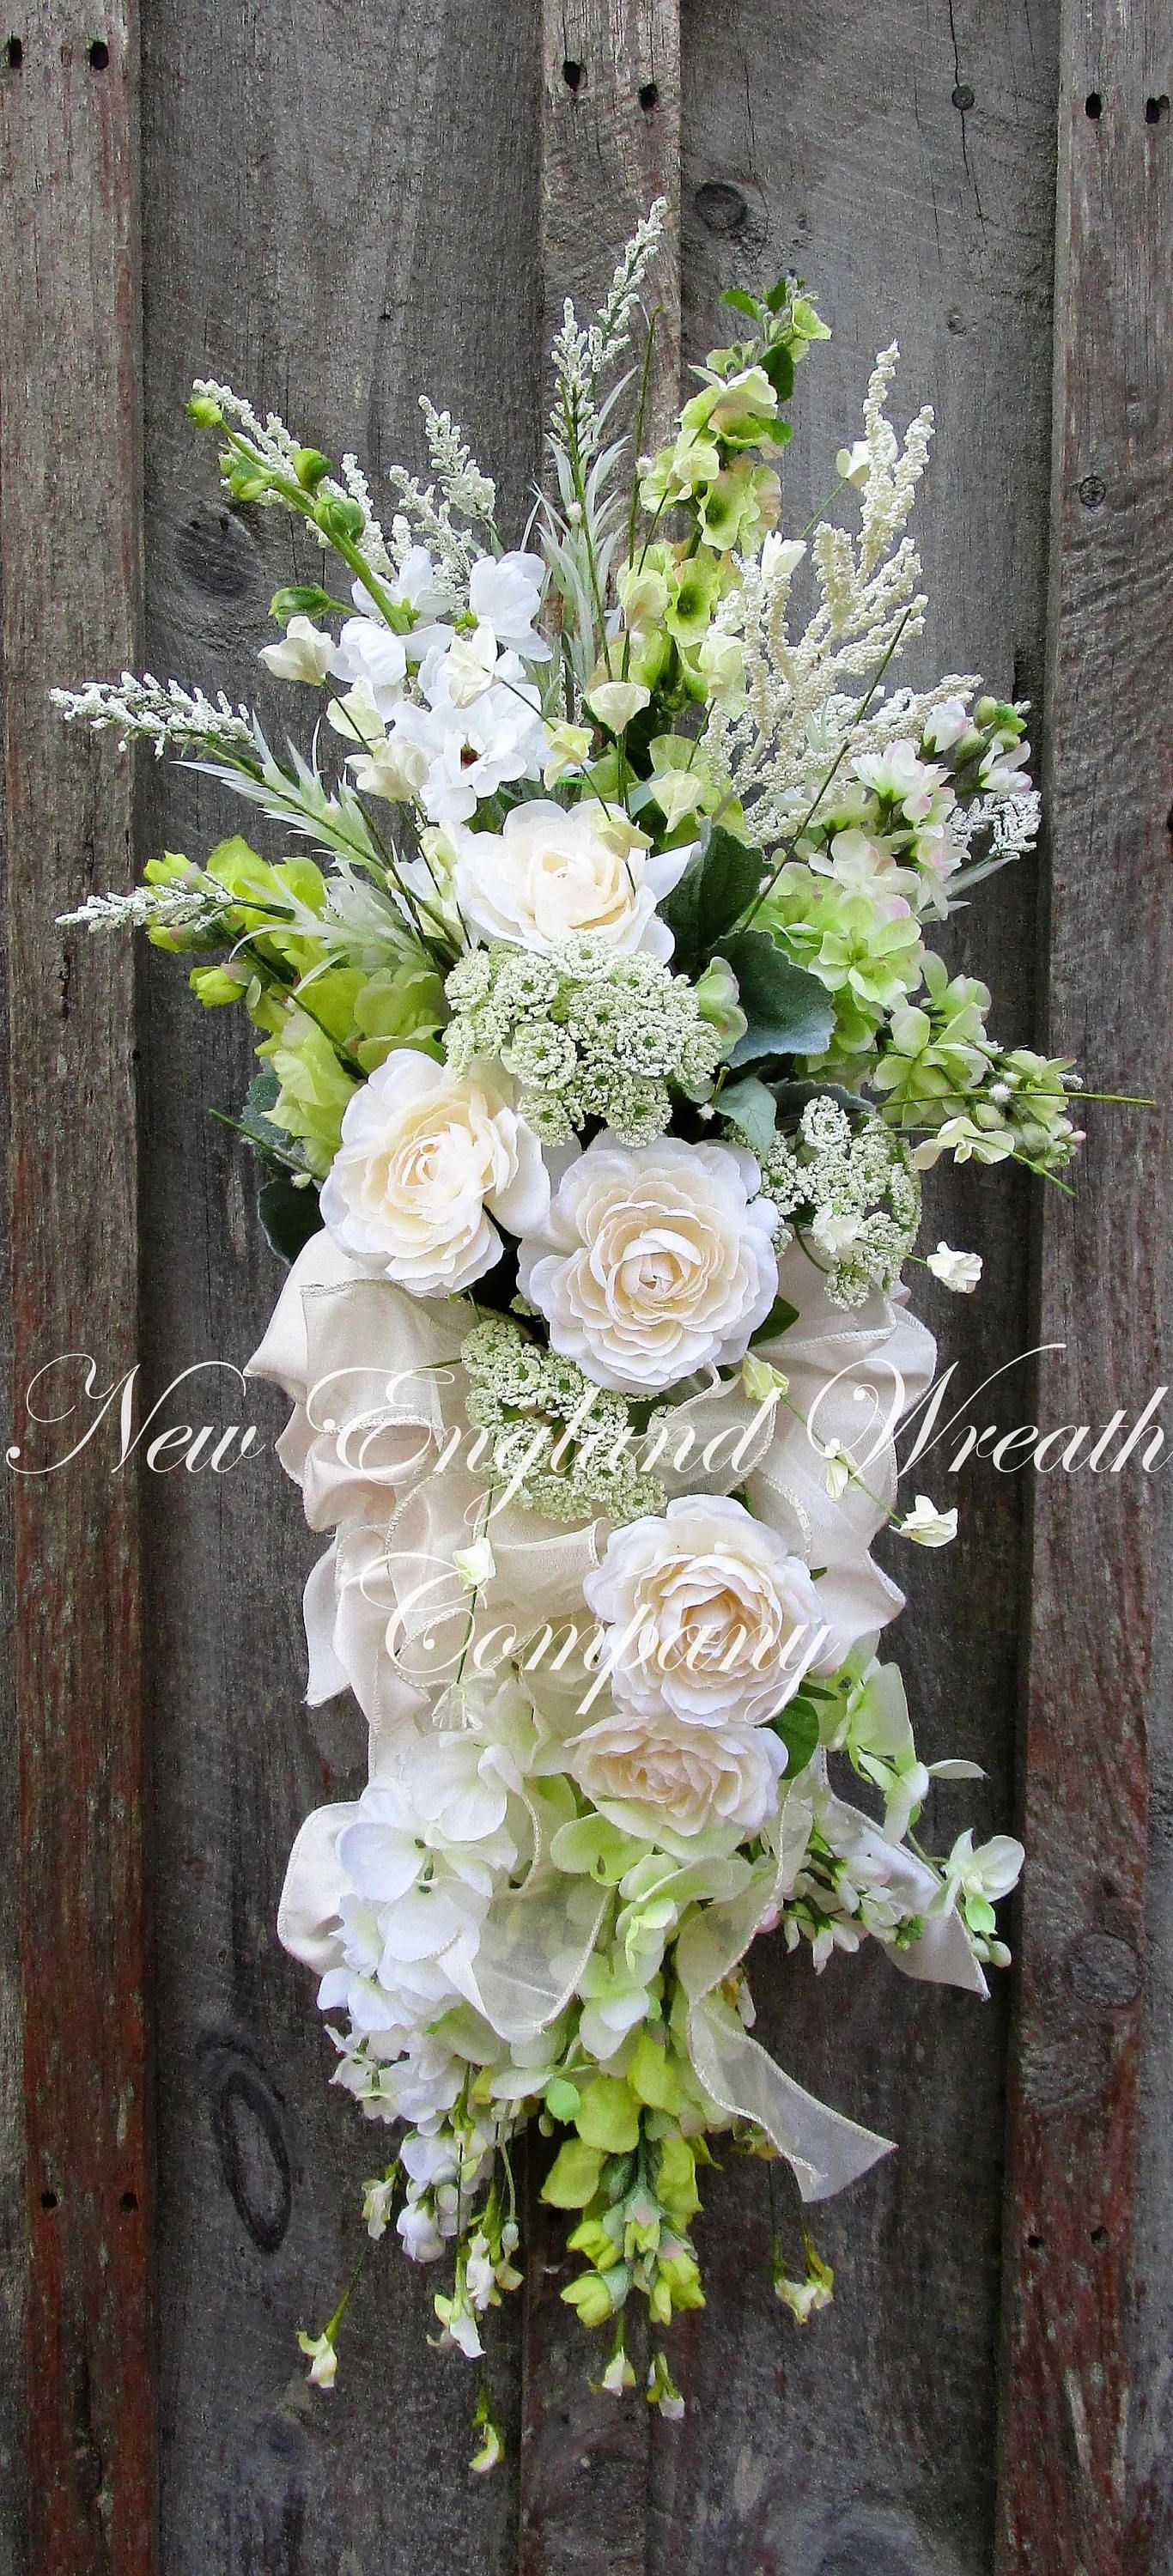 Chestnut Hill Floral Swag A New England Wreath Company